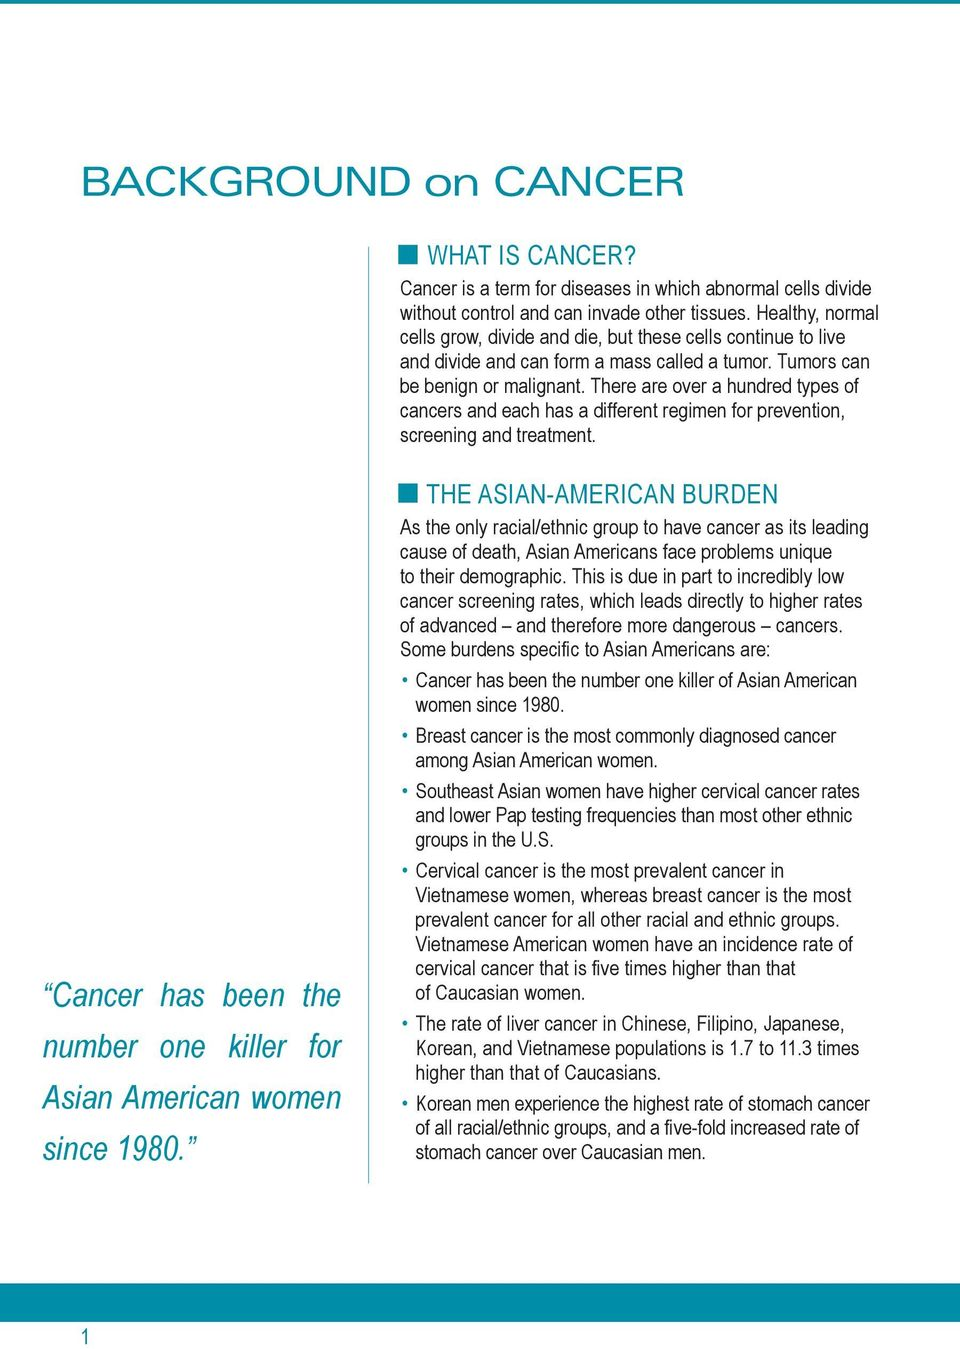 There are over a hundred types of cancers and each has a different regimen for prevention, screening and treatment. Cancer has been the number one killer for Asian American women since 1980.